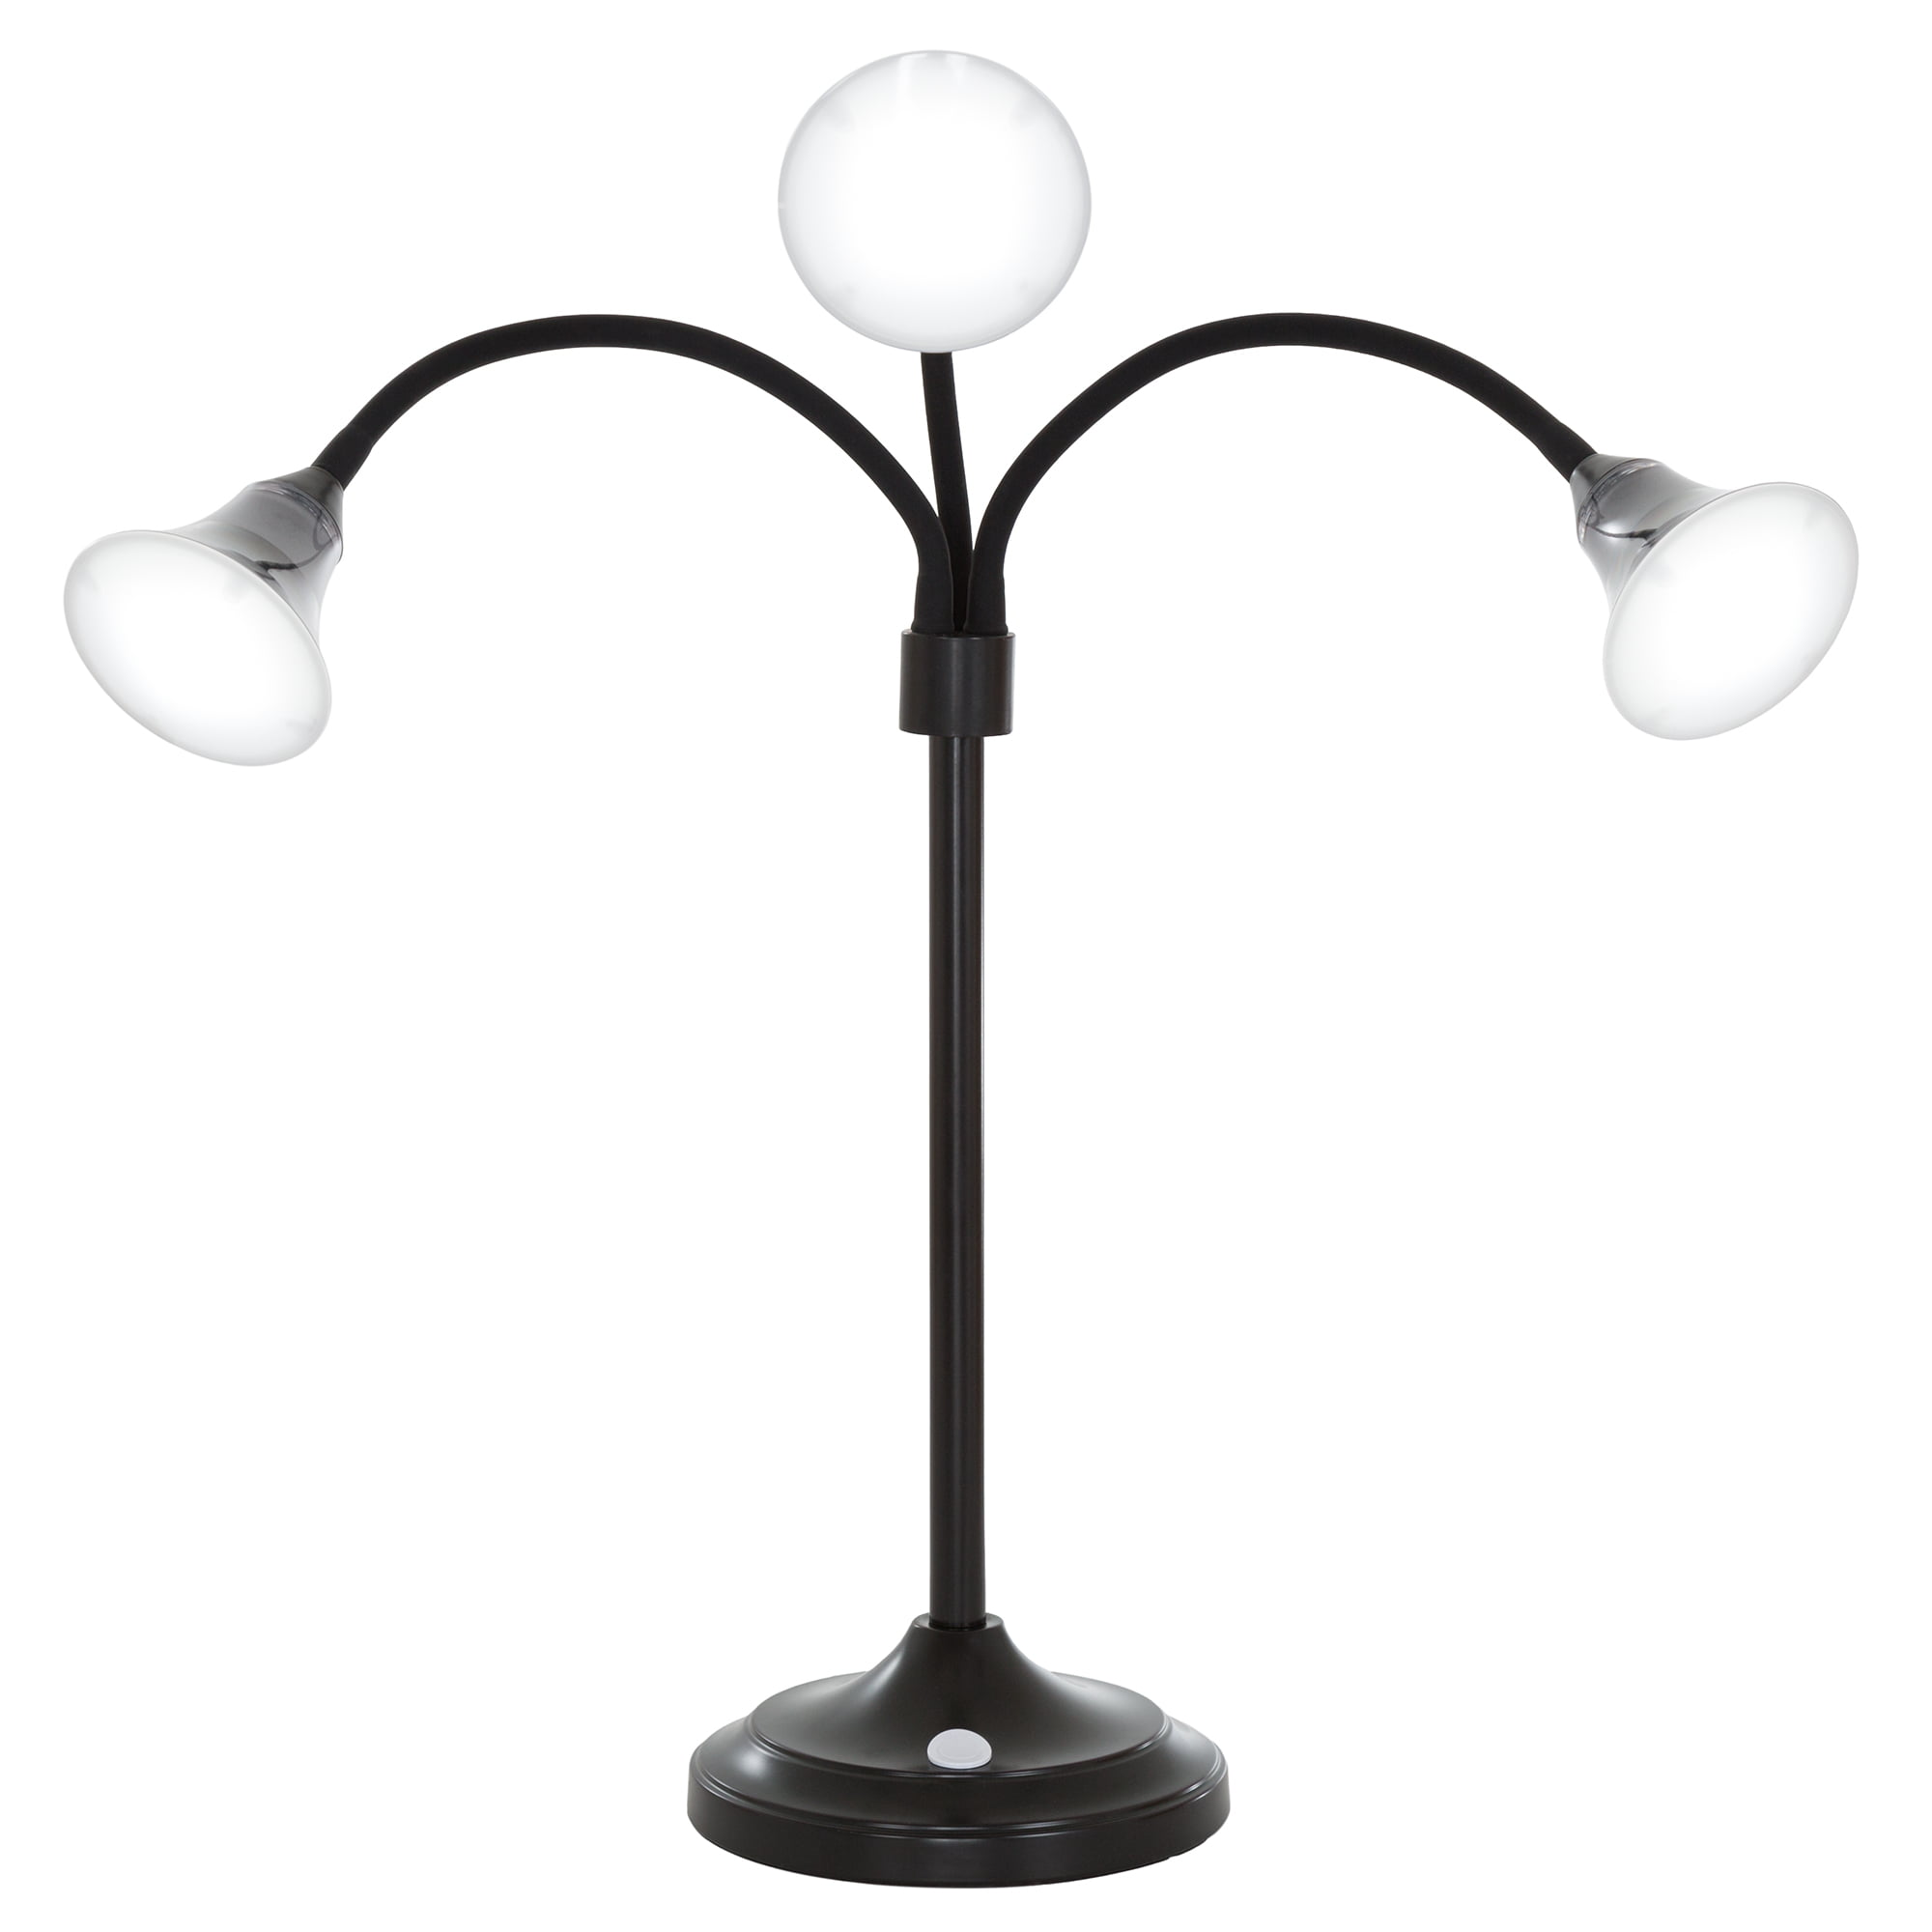 3 Head Desk Lamp, LED Light with Adjustable Arms, Touch Switch and Dimmer (Multiple Colors) by Lavish Home by Trademark Global LLC